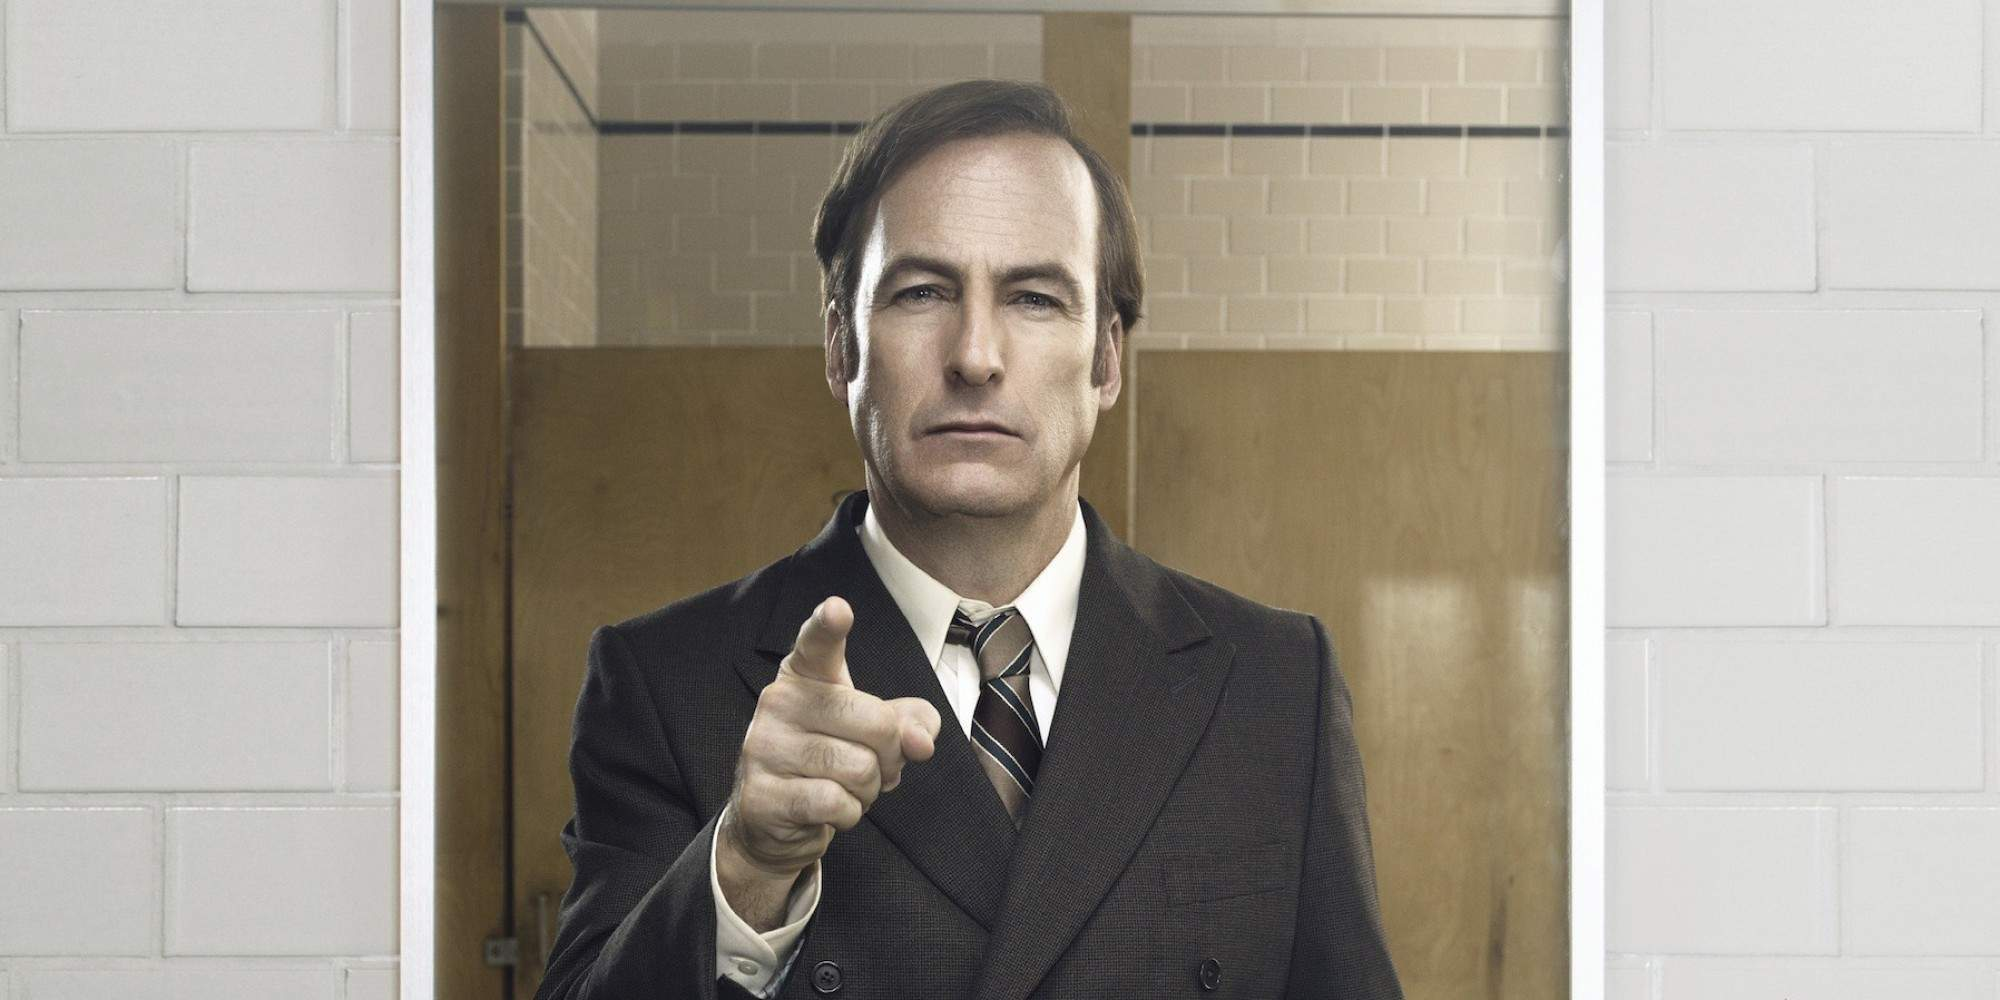 Lionel Shriver: Even if you haven't seen Breaking Bad, you should still watch Better Call Saul